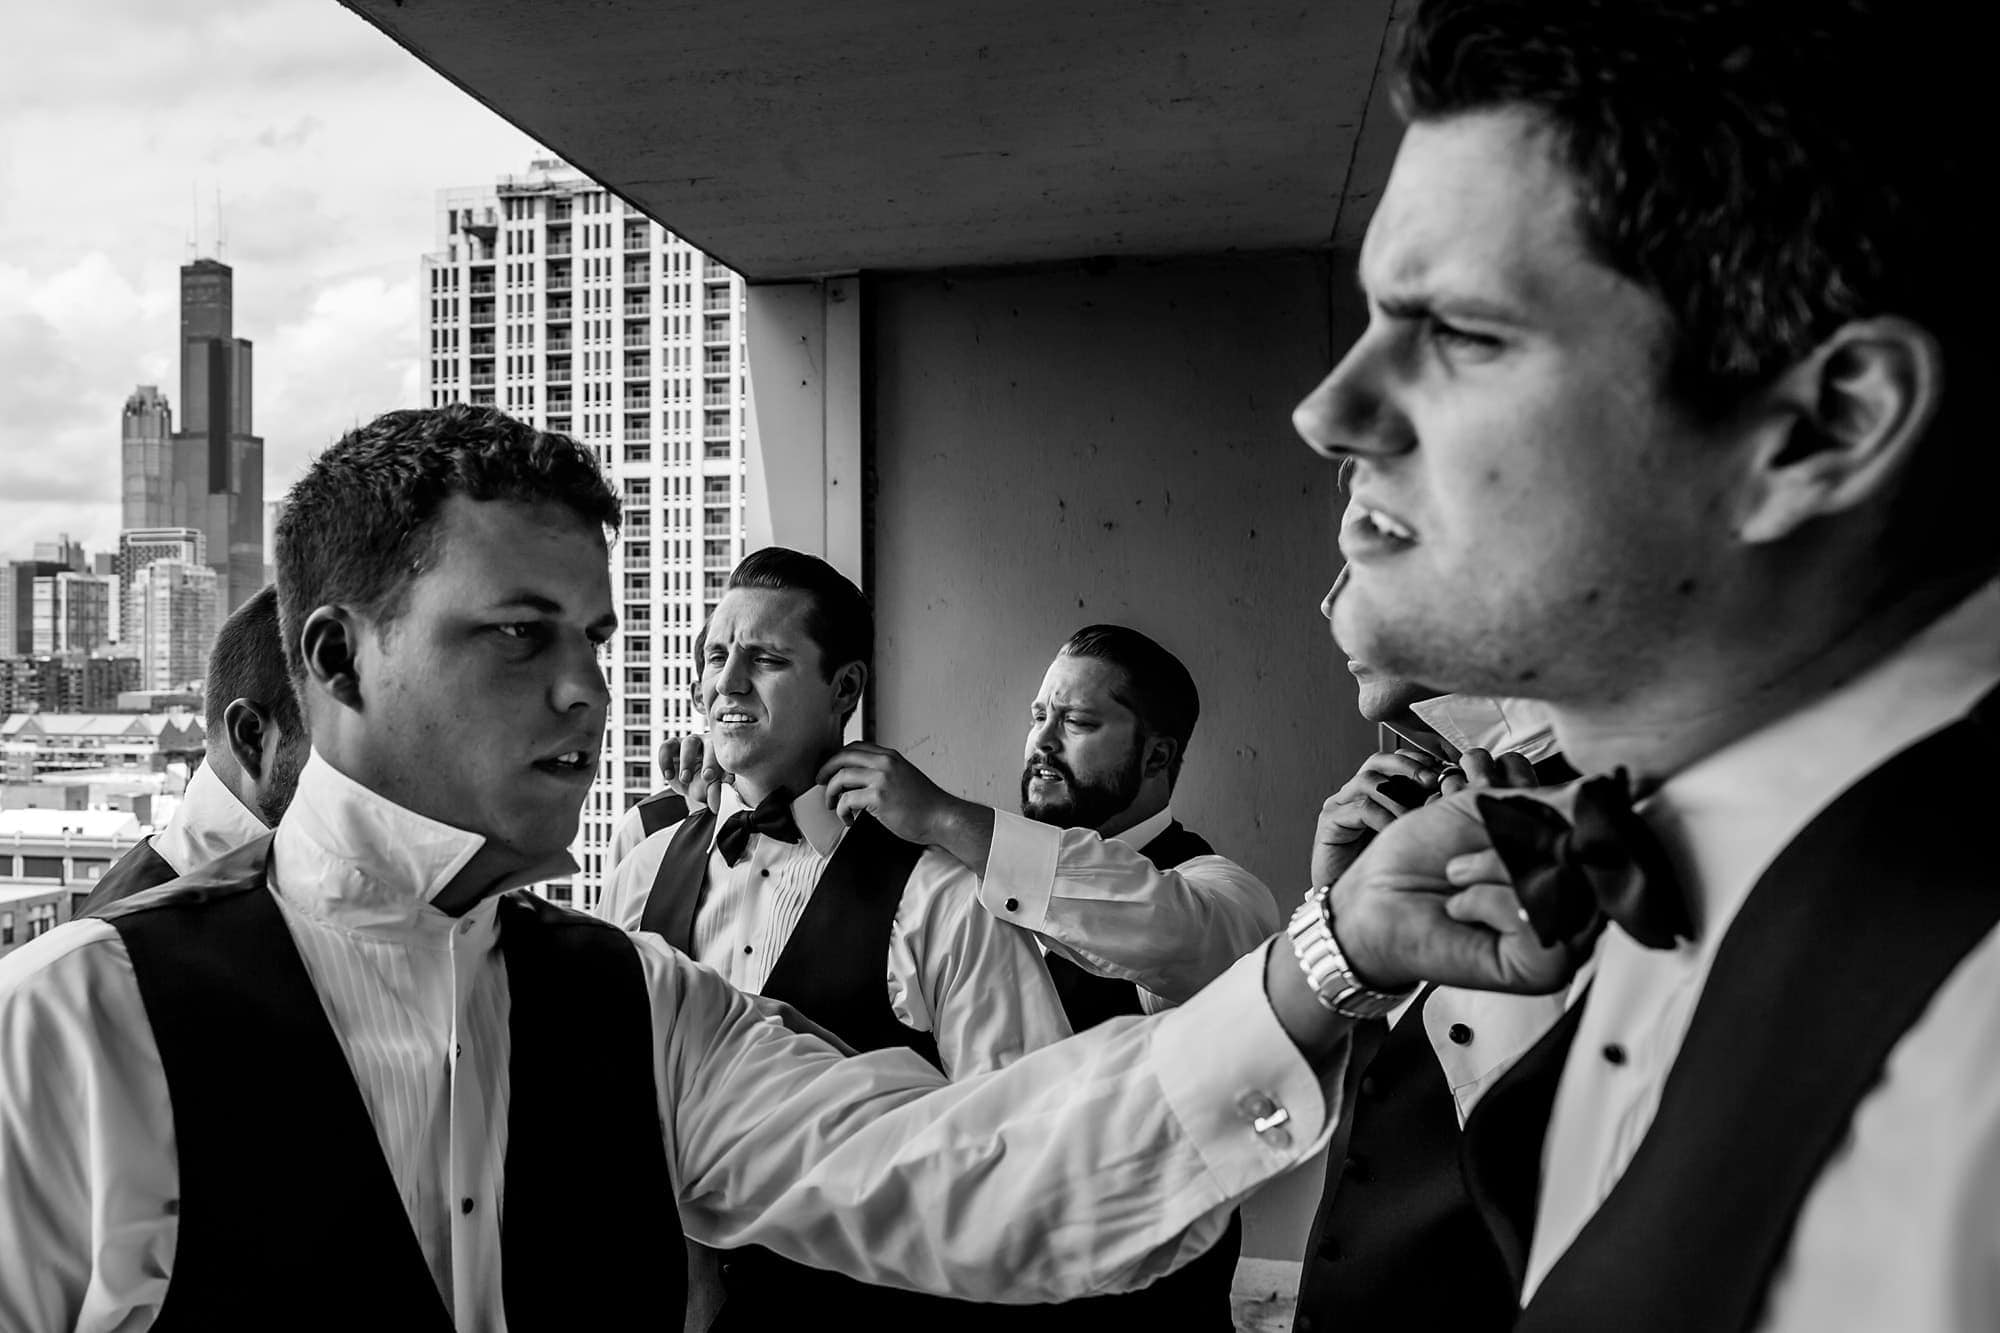 The groom and his groomsmen help adjust each others bowtie while getting ready at a condo in the South Loop of Chicago as Willis Tower is seen in the background.